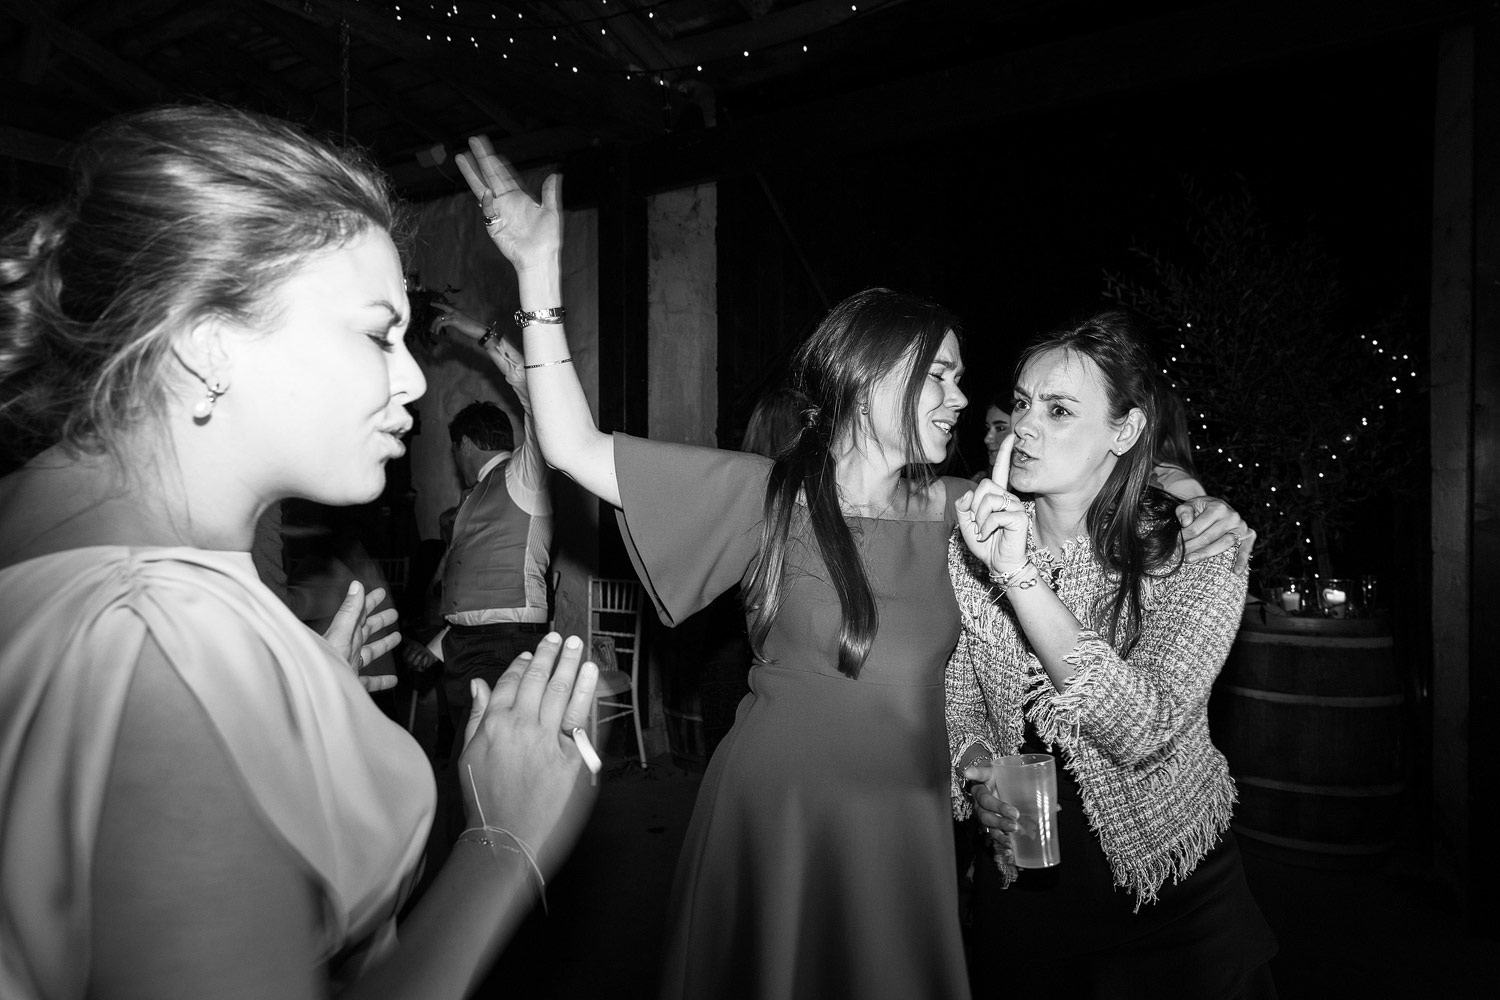 Wedding guests dance at a wedding at Chateau Rigaud in Bordeaux - French wedding photographer